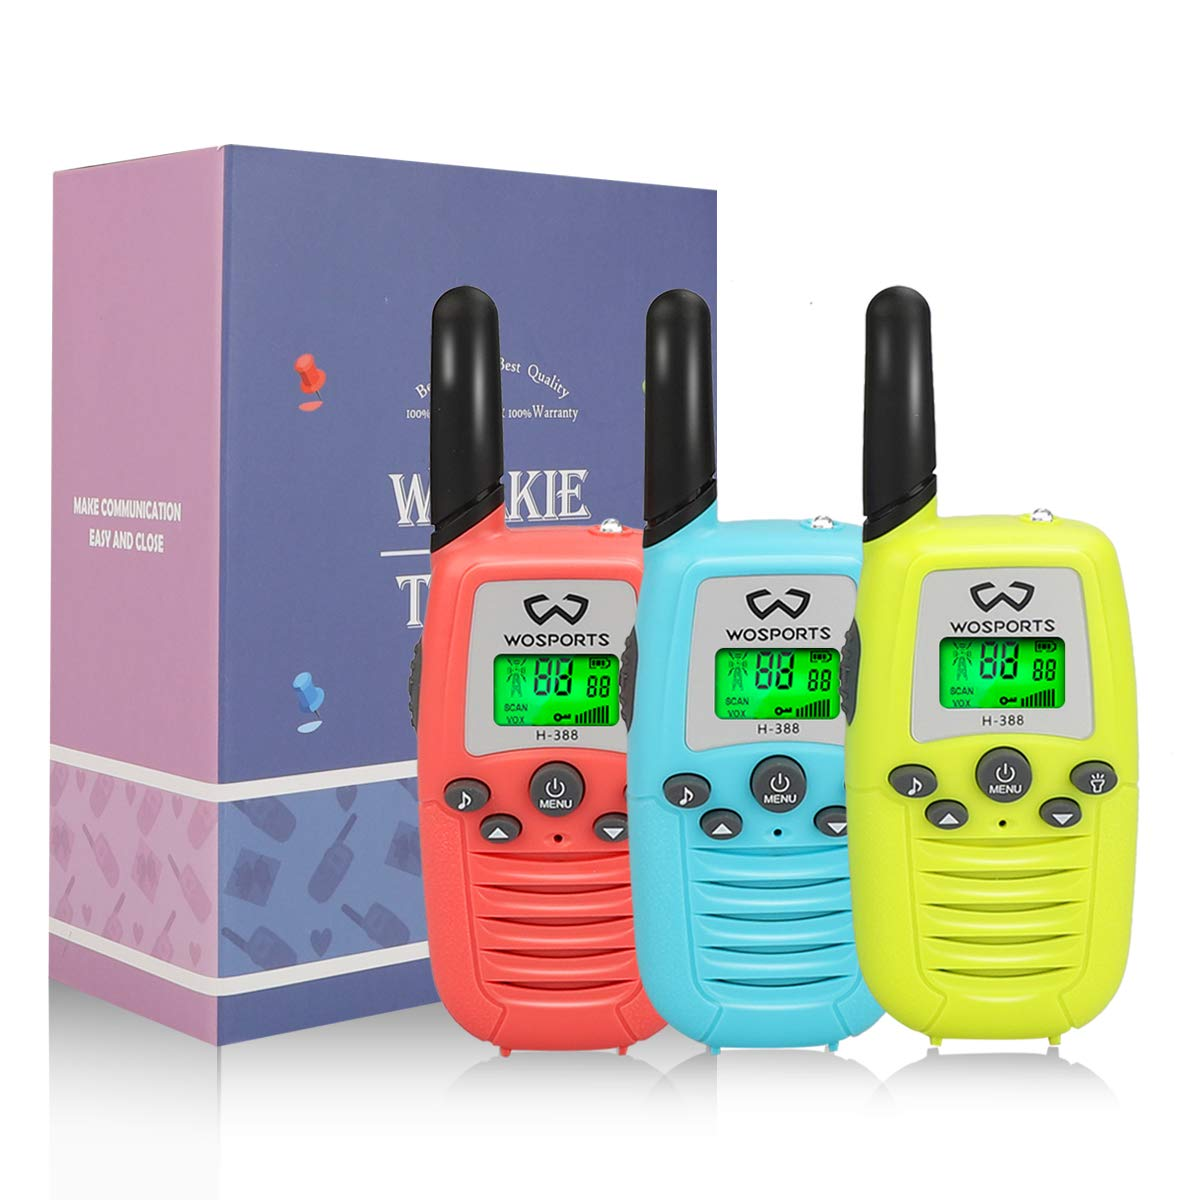 WOSPORTS Kids Walkie Talkies, 3 Pack Two Way Radios with Belt Clip, 3 KM Range Children Toy for Outdoor Adventures Game, Camping, Hiking by WOSPORTS (Image #7)